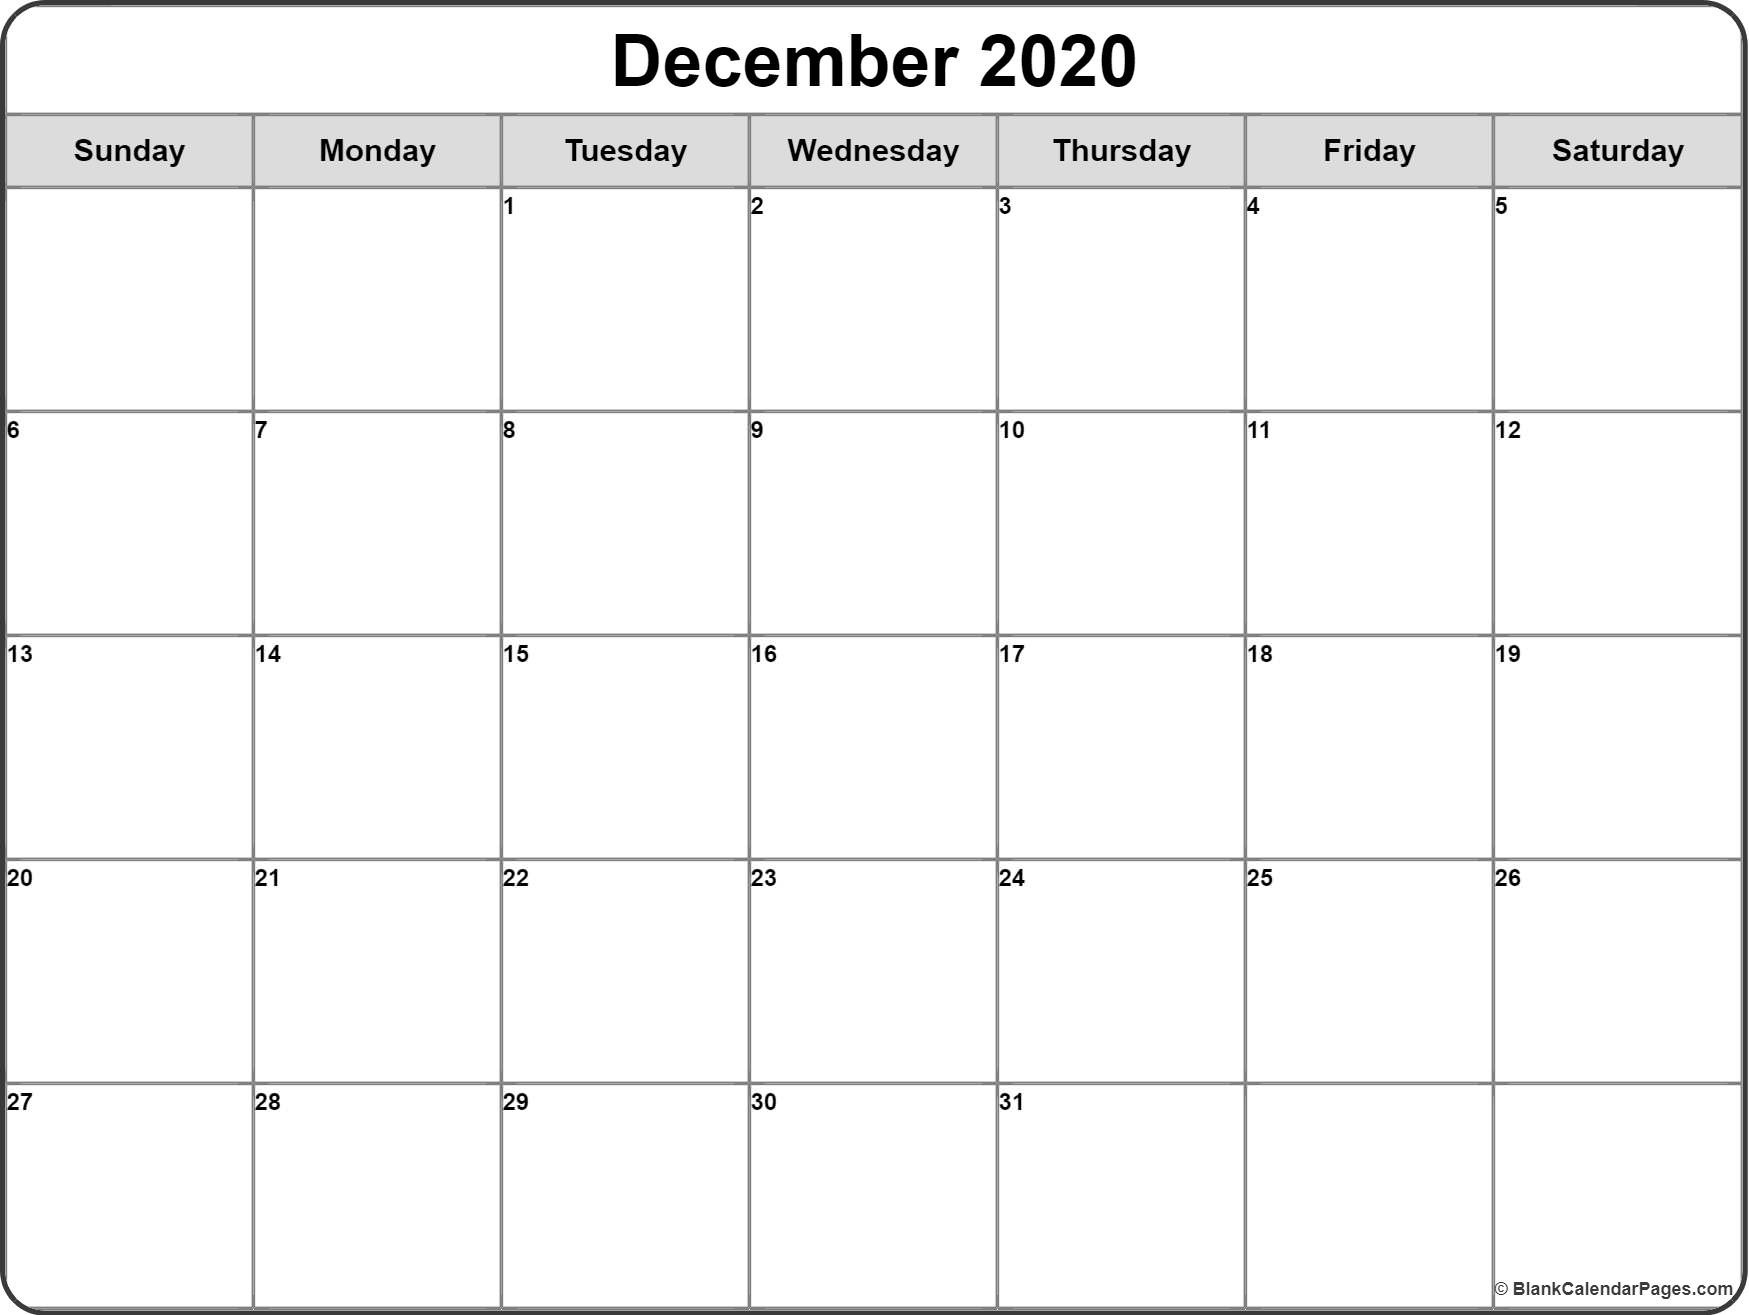 December 2020 Calendar | Free Printable Monthly Calendars-Free Printable Calendar 2020 Bill Paying Monthly